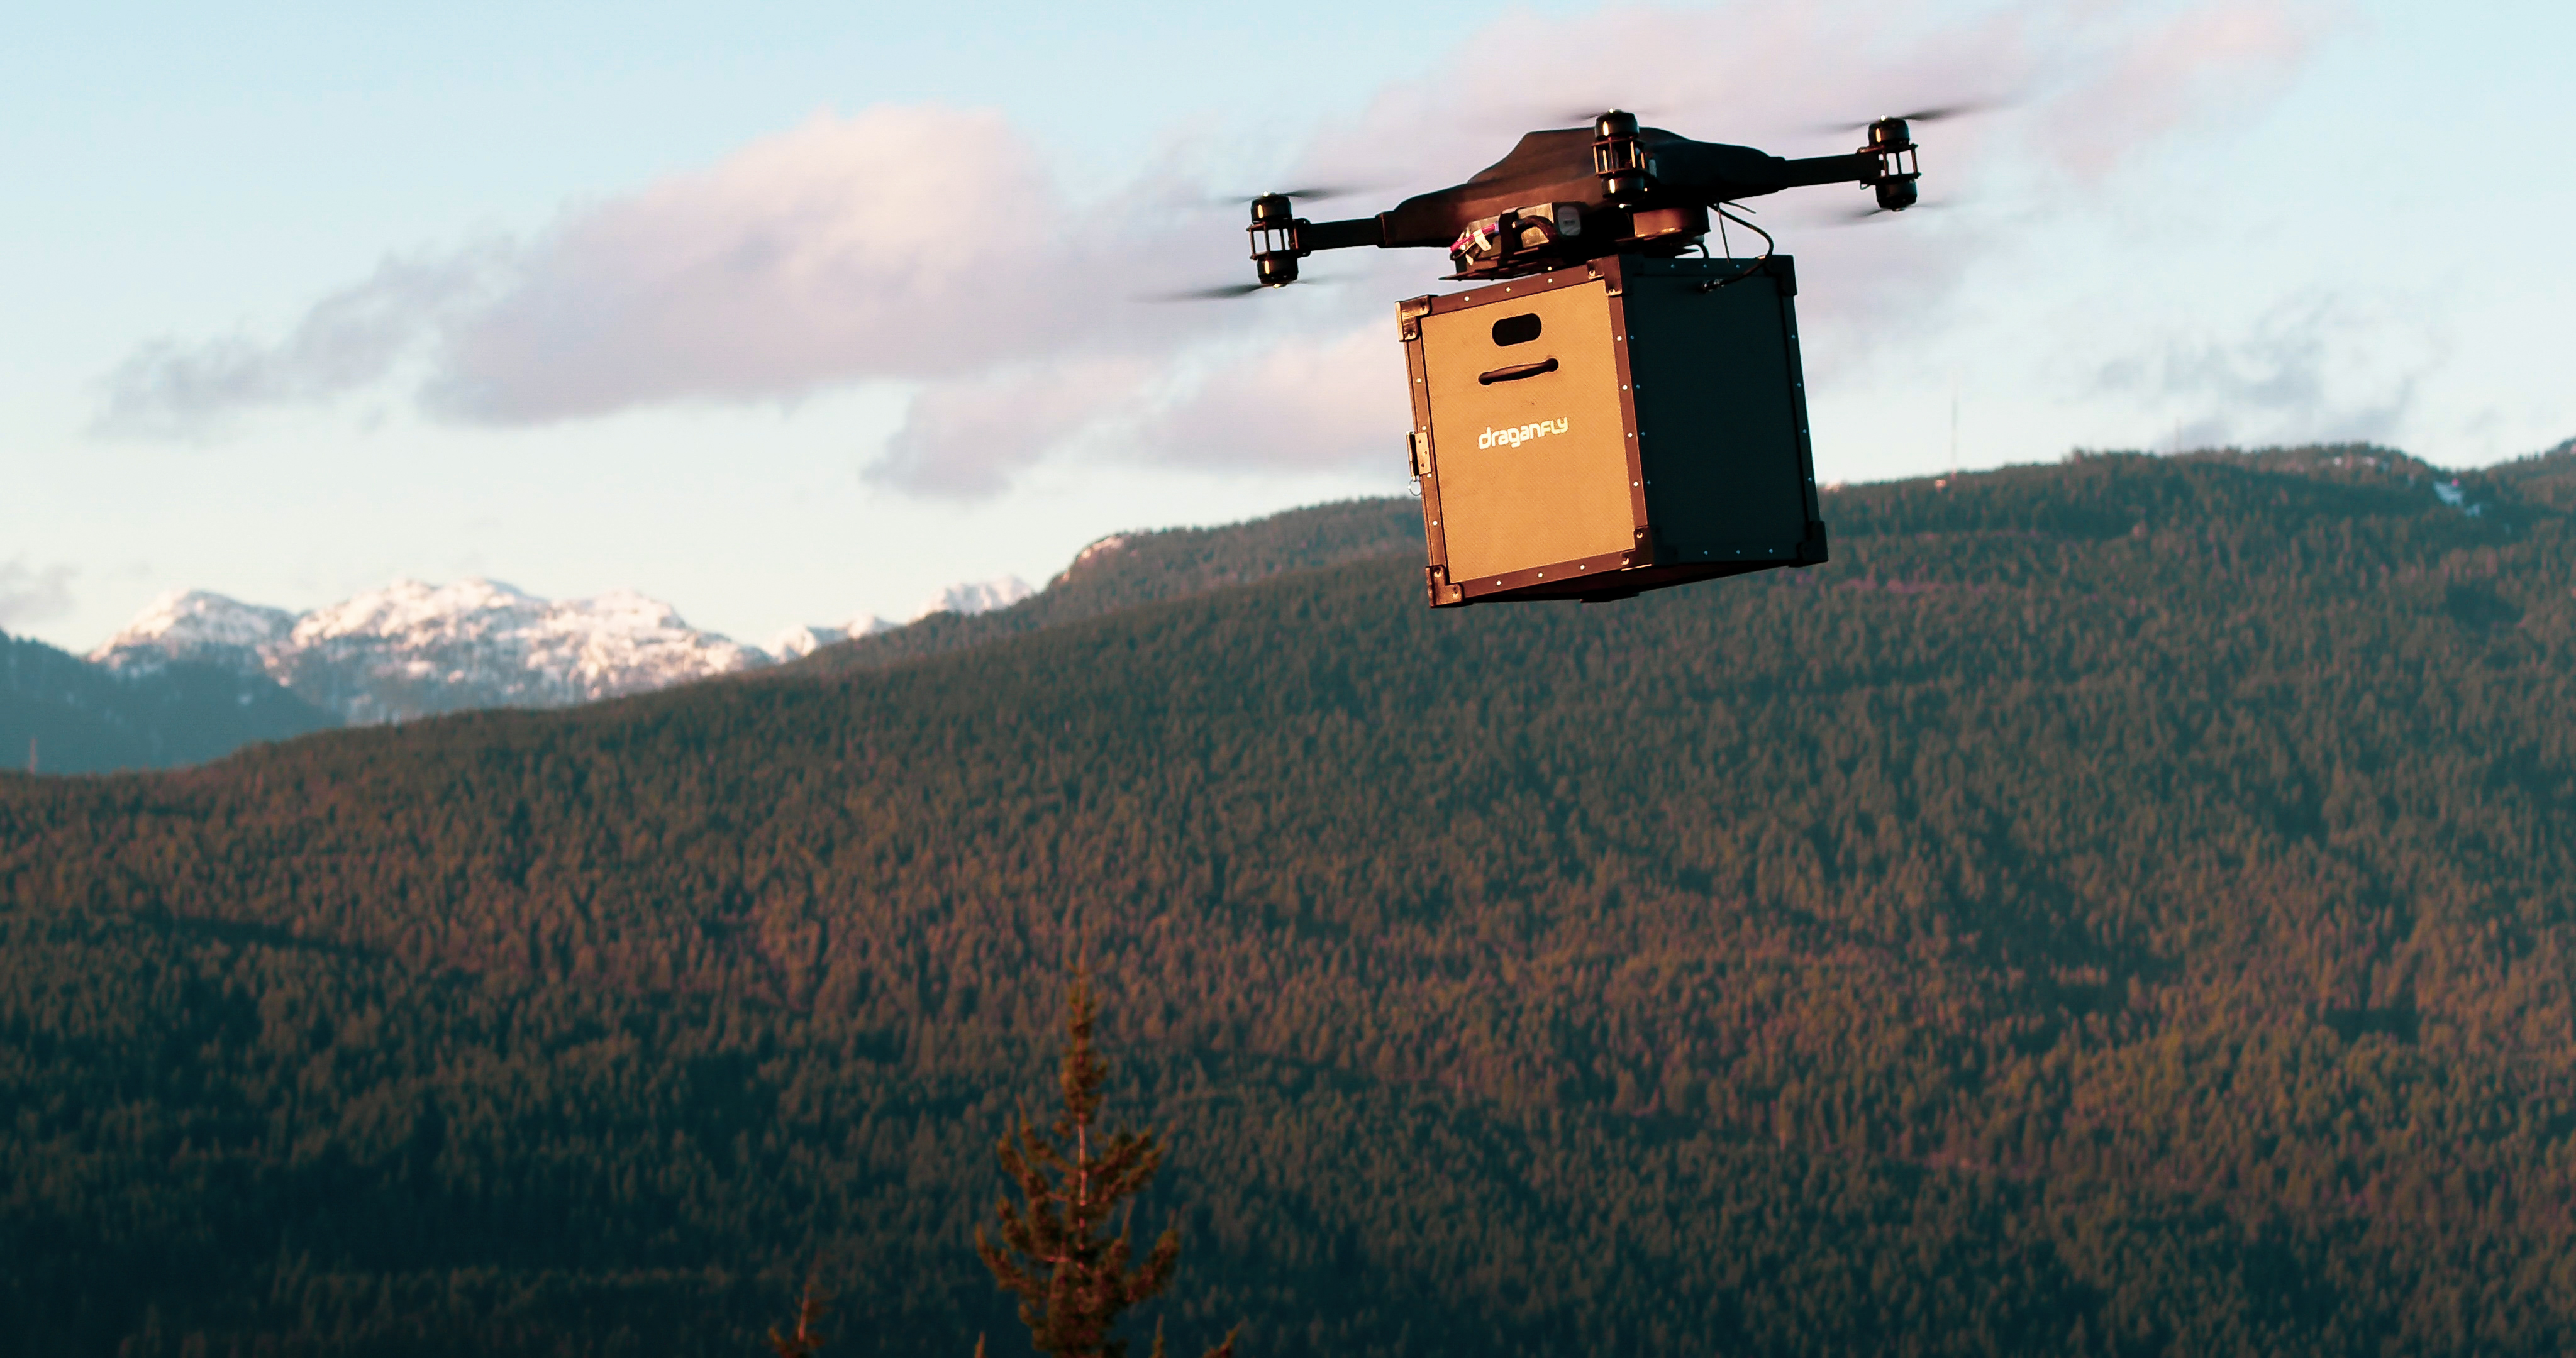 """A robust Covid-19 vaccine drone delivery payload system for use in critical regions is being developed.   The payload to be developed by U.S. company Draganfly, and is a sustainable thermal management system with capability to carry a minimum of 300 multi-doses or 100 single doses. It is being designed as part of a comprehensive delivery and logistics platform of which Draganfly will operate.   """"It is very exciting that COVID-19 vaccinations are starting to be distributed. Draganfly will help us solve the problem which is the timely and precise distribution of the vaccine in hard-to-reach areas."""" said Wayne Williams, Founder and Executive Director of Coldchain Technology.   Draganfly Inc., has been selected by Coldchain Technology Services, LLC to immediately develop and provide flight services.   Coldchain Technology provides comprehensive solutions for healthcare supply chain management for multiple government and commercial clients, including the US Army, the Centers for Disease Control and Prevention, Reserve Component forces, Johnson & Johnson brands, Chicago Department of Public Health, and others and has been leading the deployment of COVID-19 vaccines throughout the United States.   """"Since the beginning of the COVID-19 pandemic, Draganfly has been committed to providing solutions to help prevent the spread of the virus, including our Vital Intelligence systems that can measure vital signs from a camera including your smartphone."""" said Cameron Chell, CEO of Draganfly. """"We are eager to develop this payload and service as we can leverage our extensive patent portfolio as well as secure auto-pilot and flight management system to help with the distribution of the vaccine for Covid-19 and beyond.""""  When: 04 Feb 2021 Credit: Draganfly/Cover-Images.com  **Editorial Use Only**"""